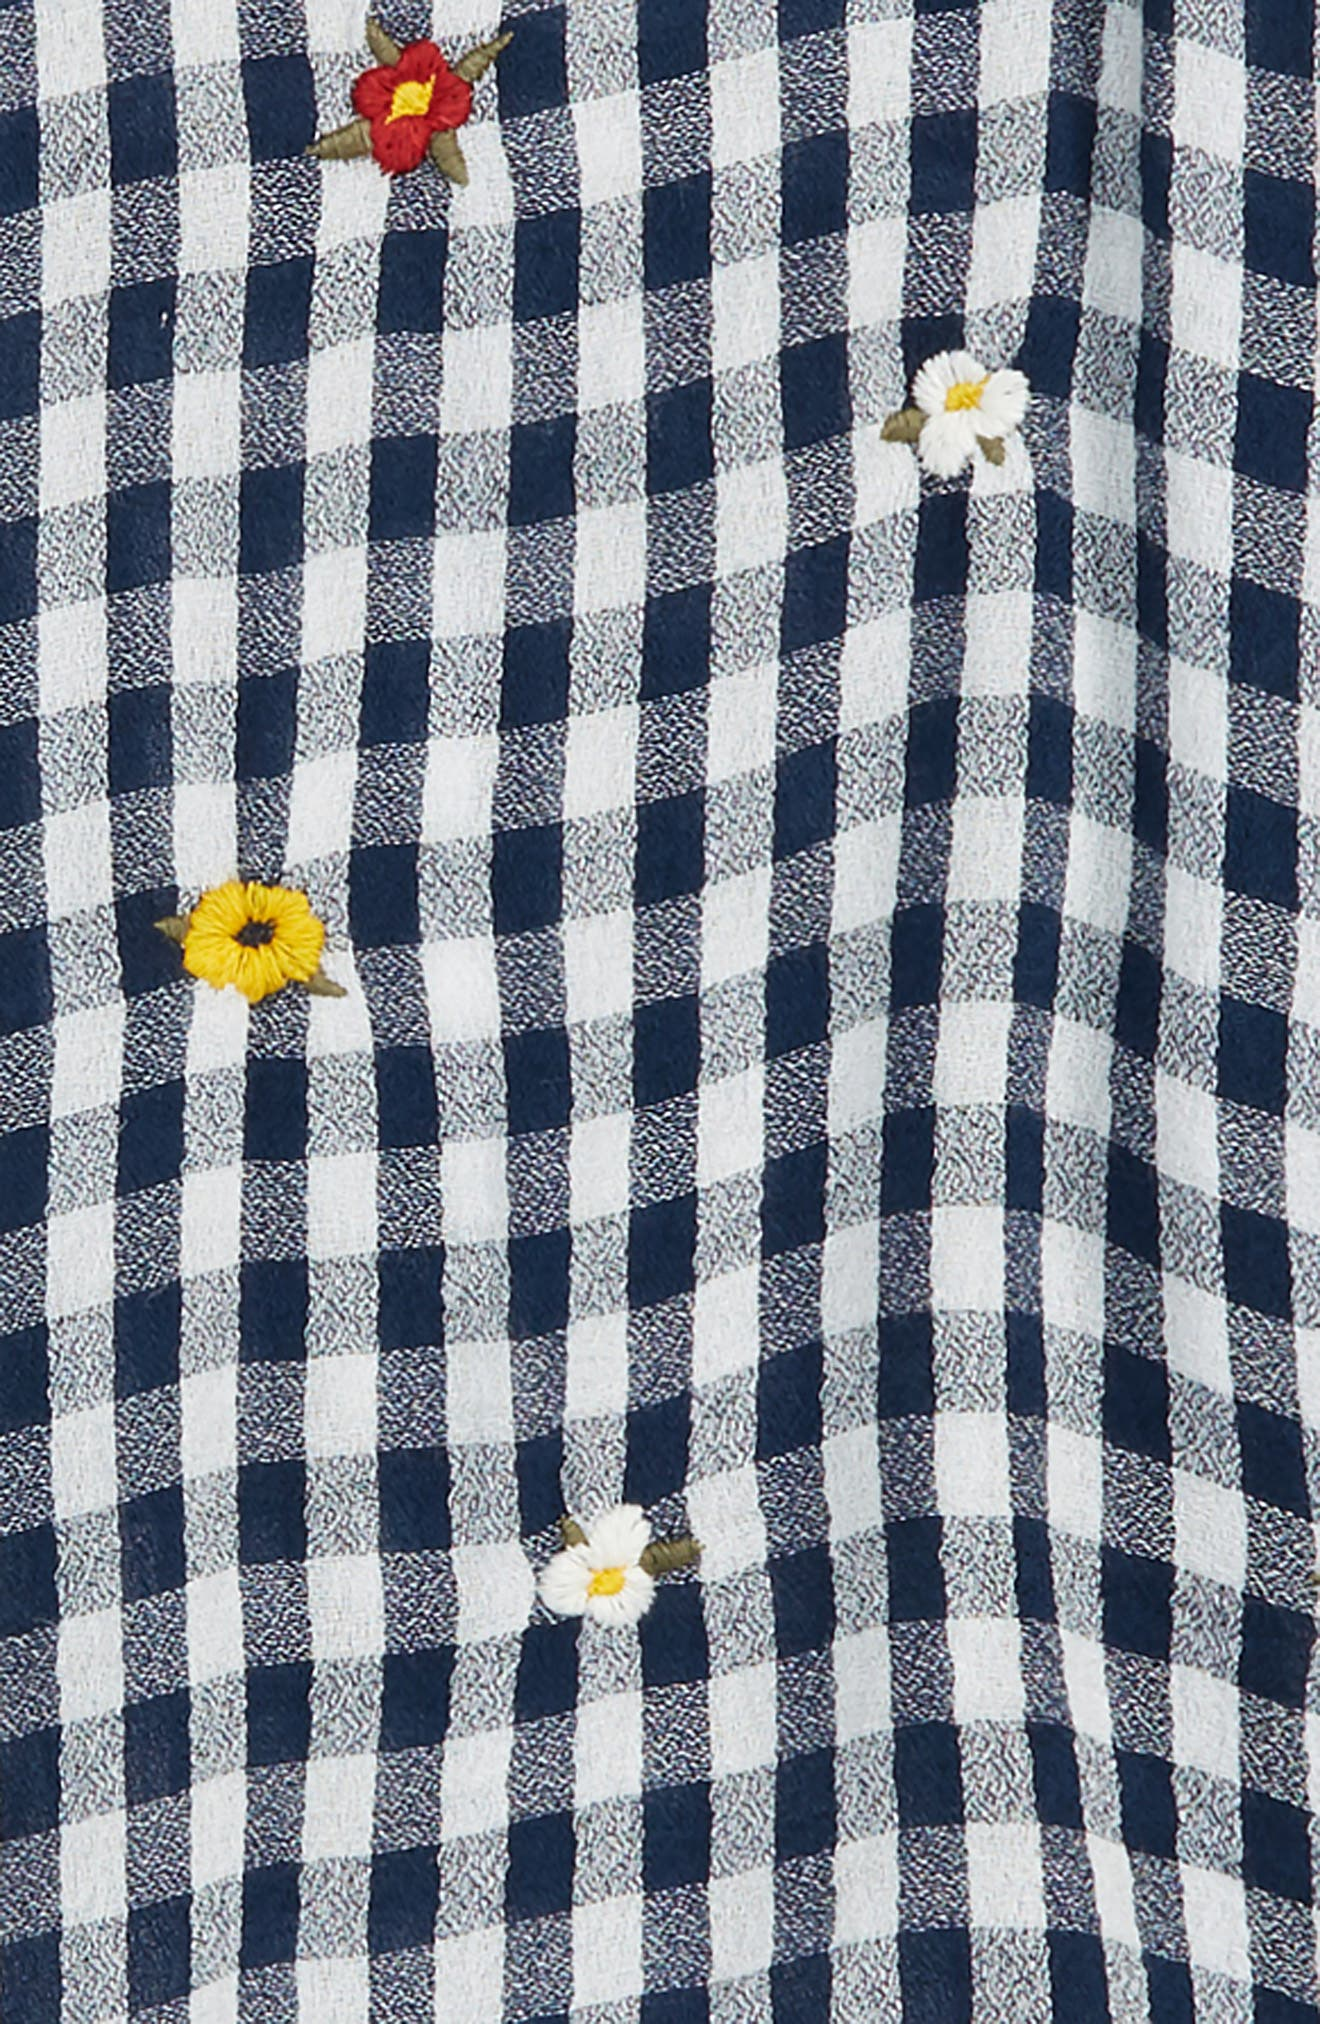 Gingham Embroidered Shirt,                             Alternate thumbnail 2, color,                             Navy Armada- White Gingham